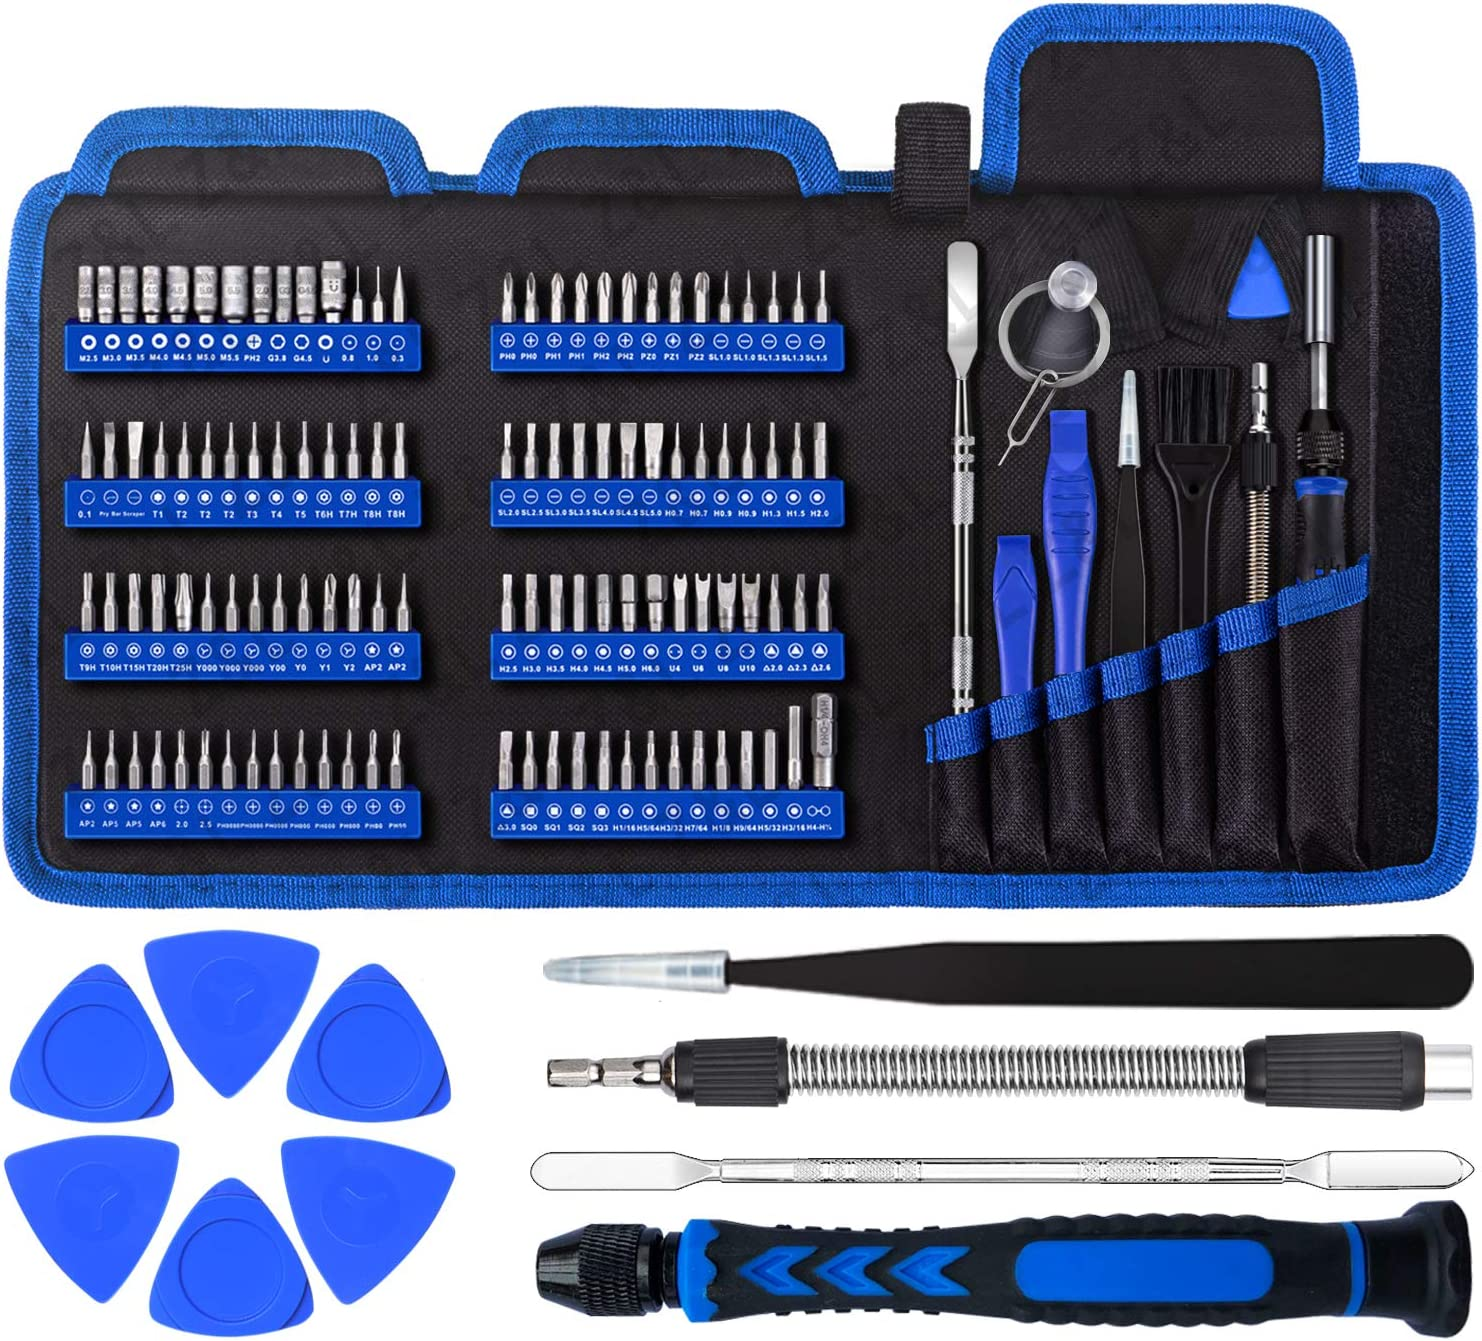 Precision Computer Screwdriver Set, with 111 Small Magnetic Bit, Professional Electronics Repair Tool Kit, Suitable for Cell Phone, iPhone, Laptop, MacBook, Tablet, Xbox, Game Console Repair